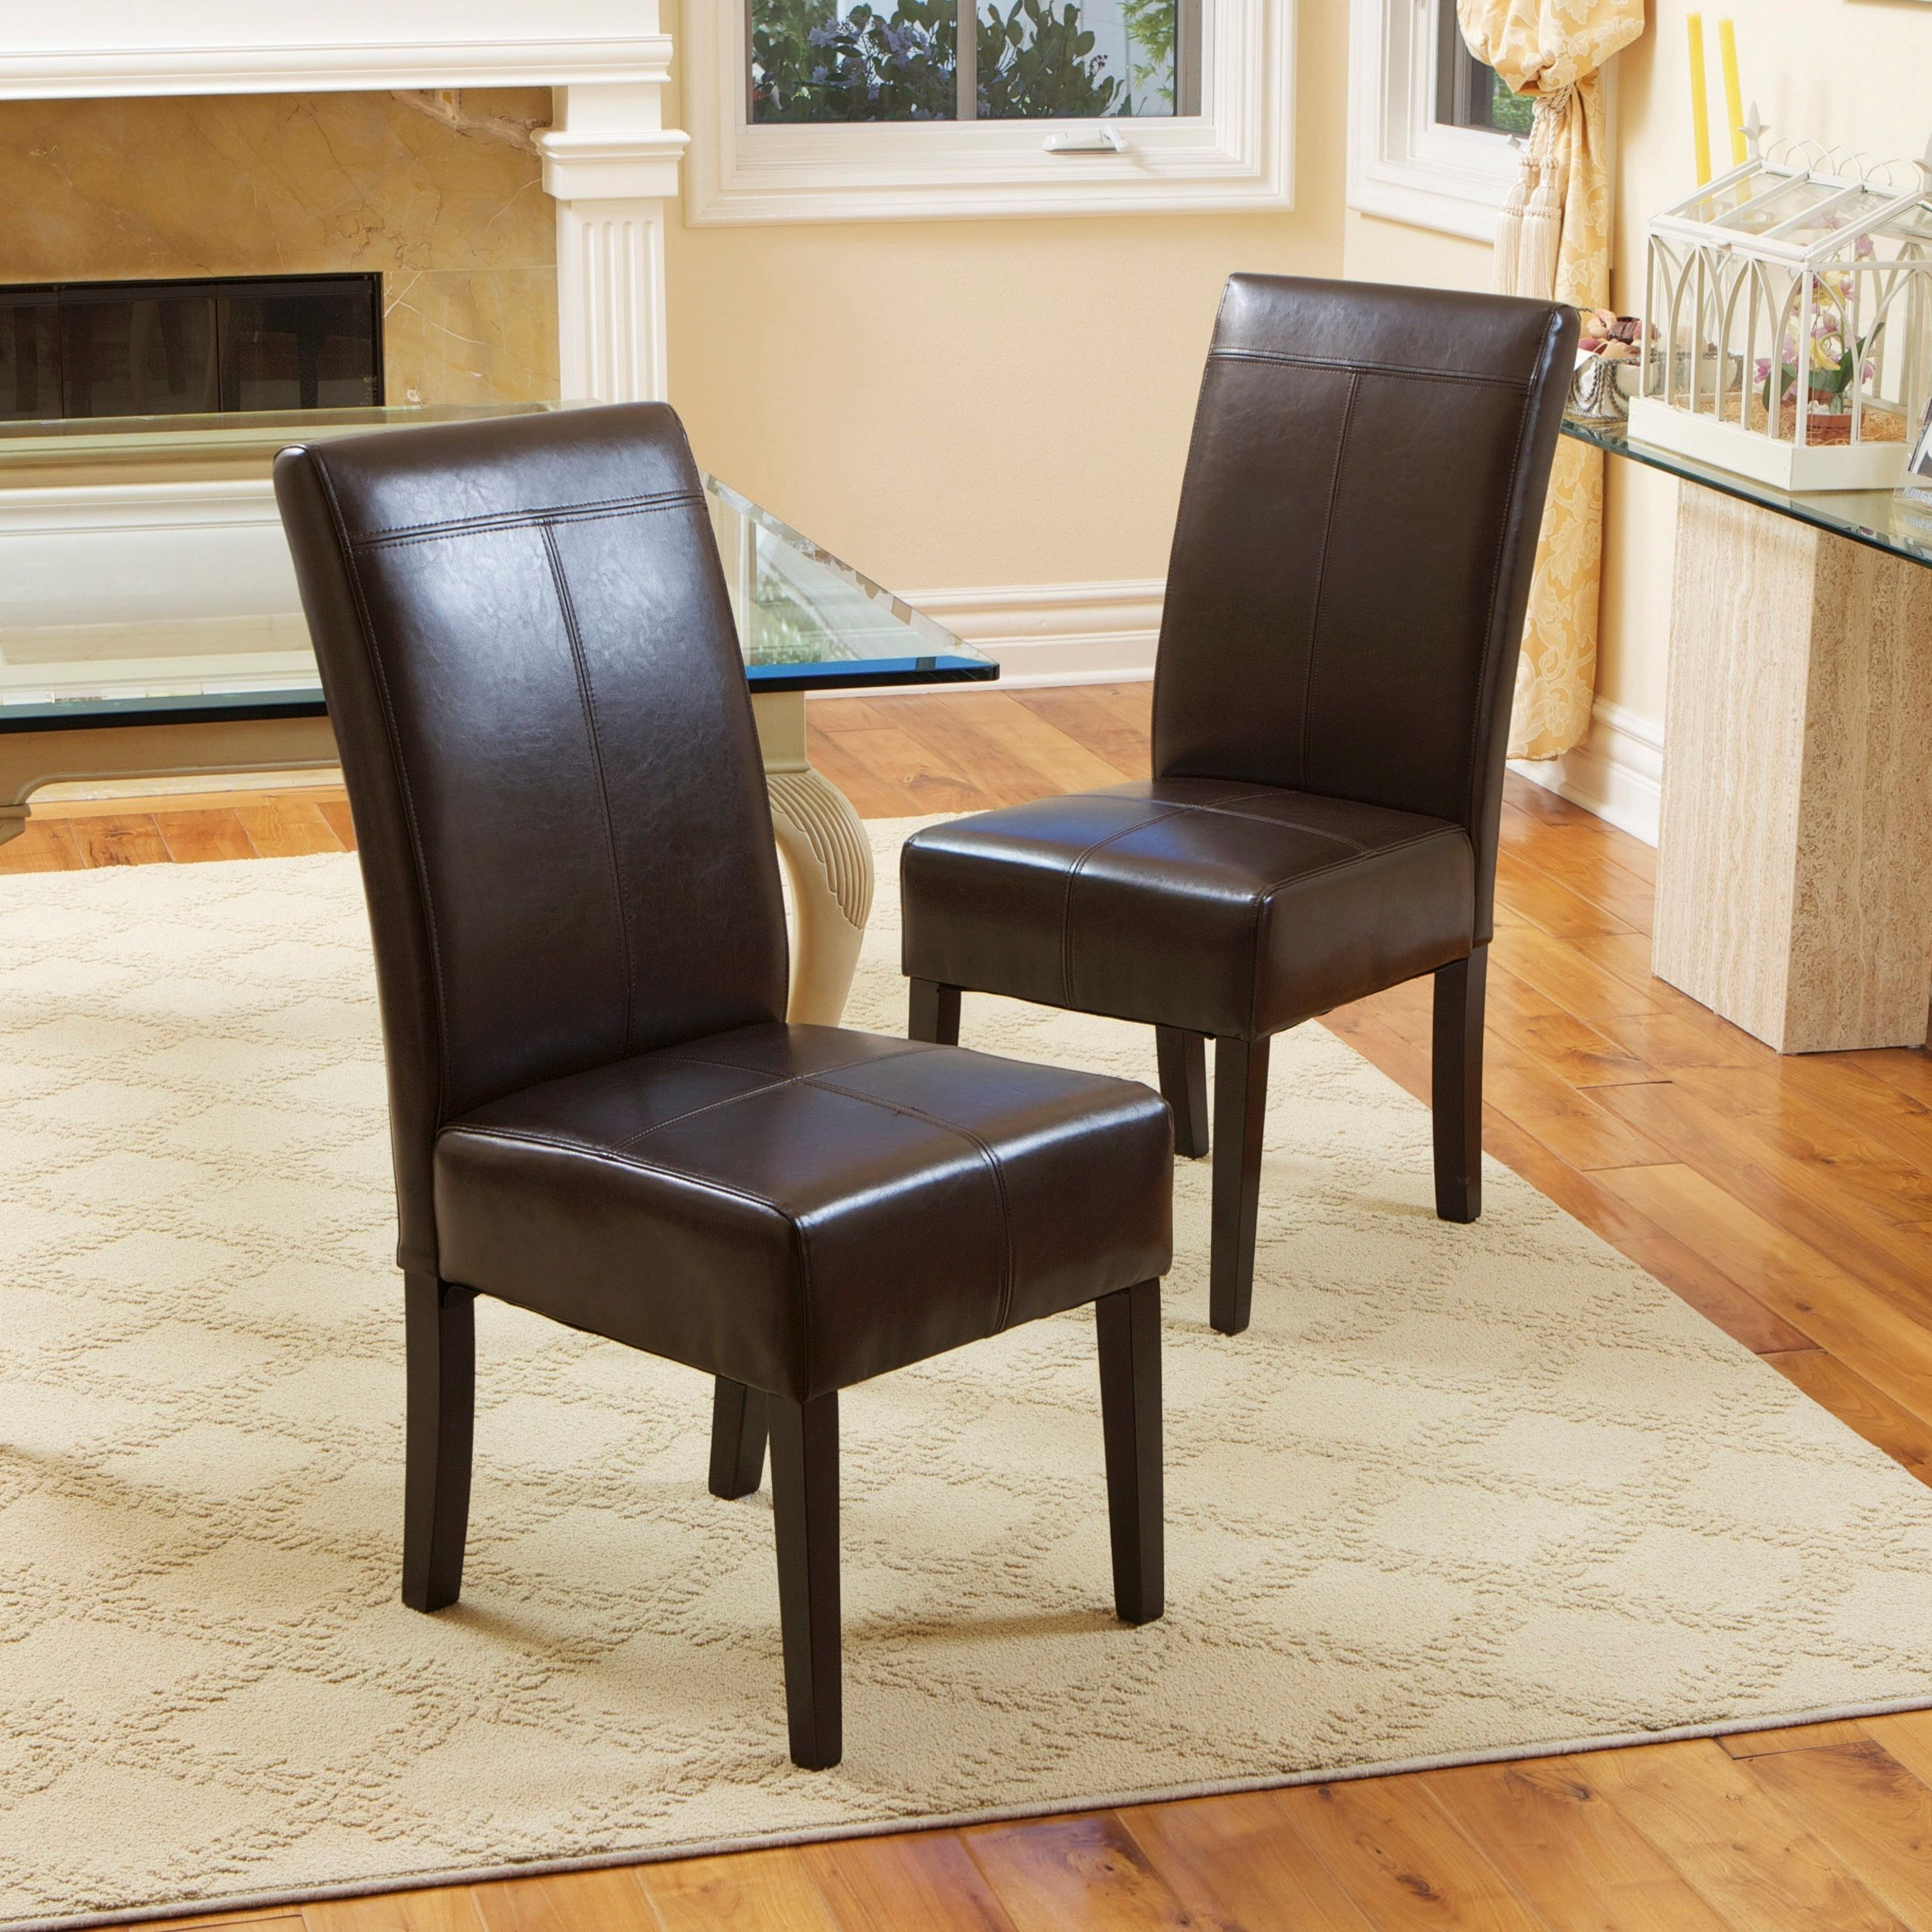 Set Of 2 Dining Room Furniture Tufted Brown Leather Dining: T-stitch Chocolate Brown Leather Dining Chairs (Set Of 2